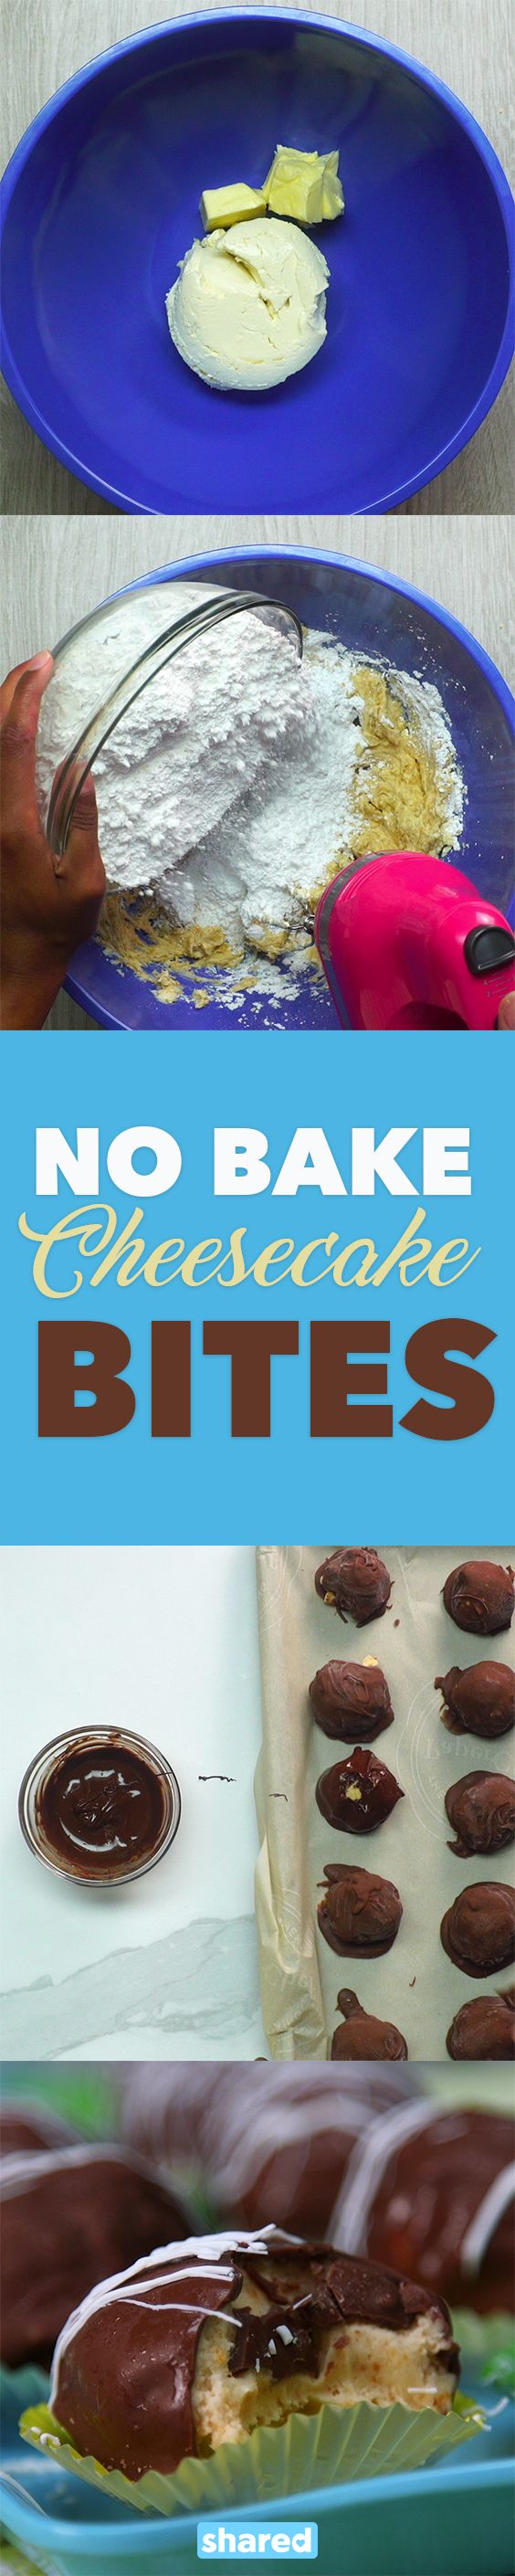 No Bake Cheesecake Bites